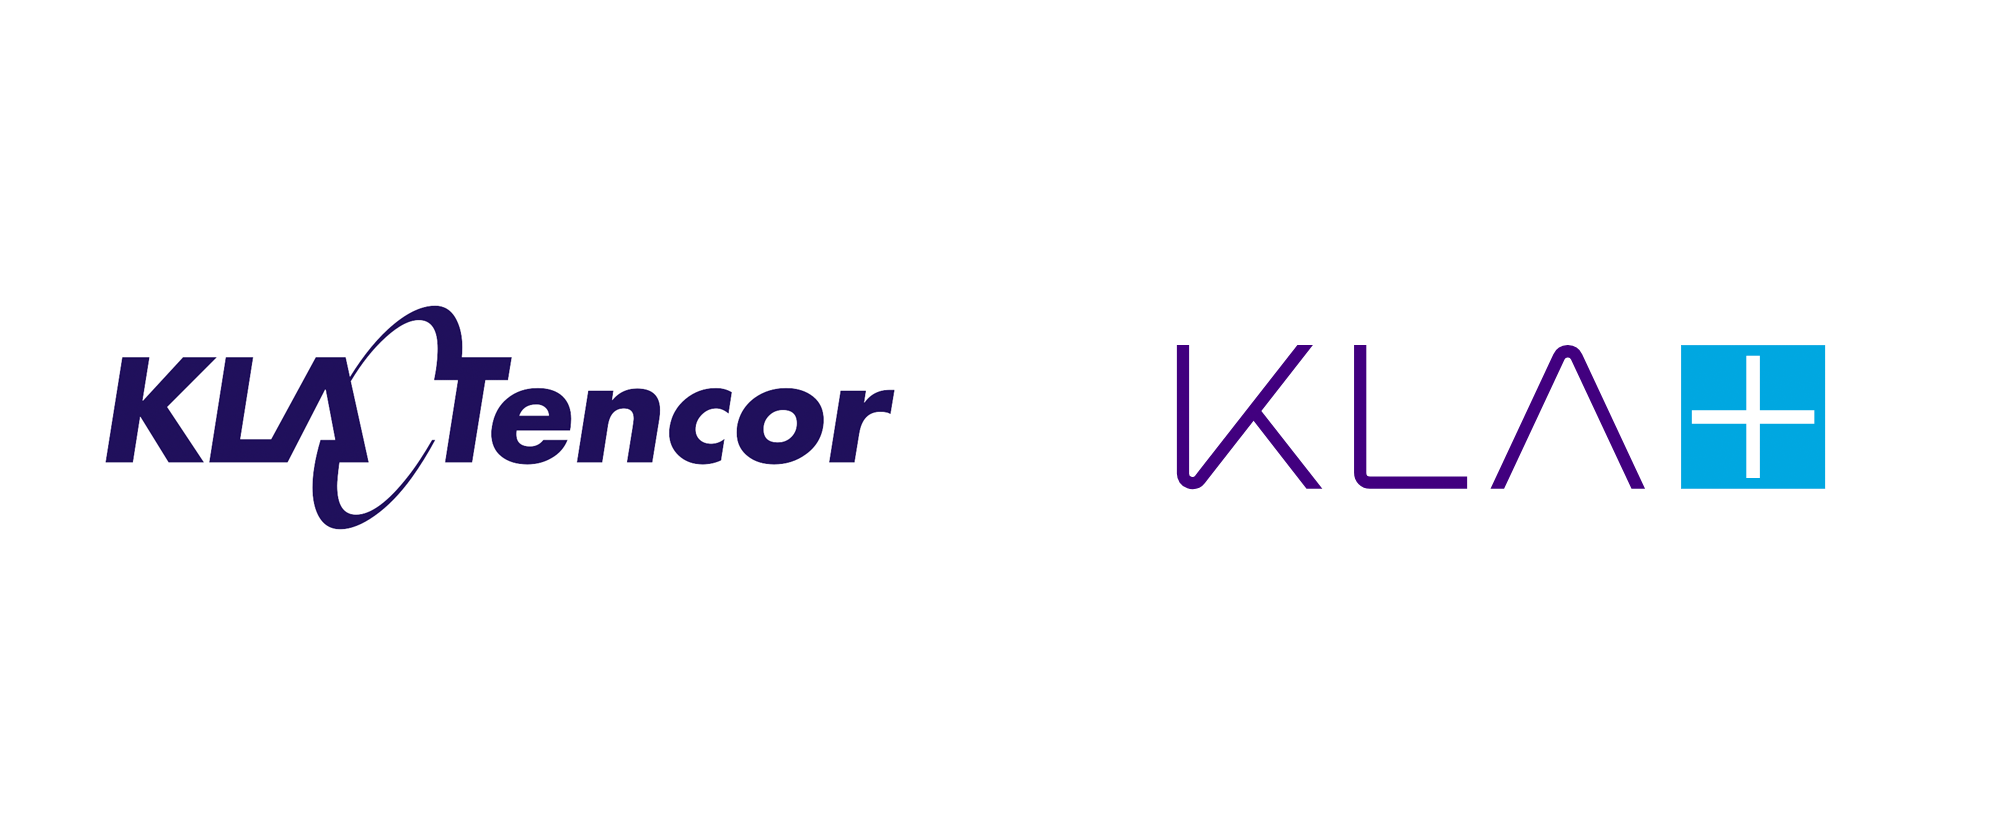 New Name and Logo for KLA Corporation